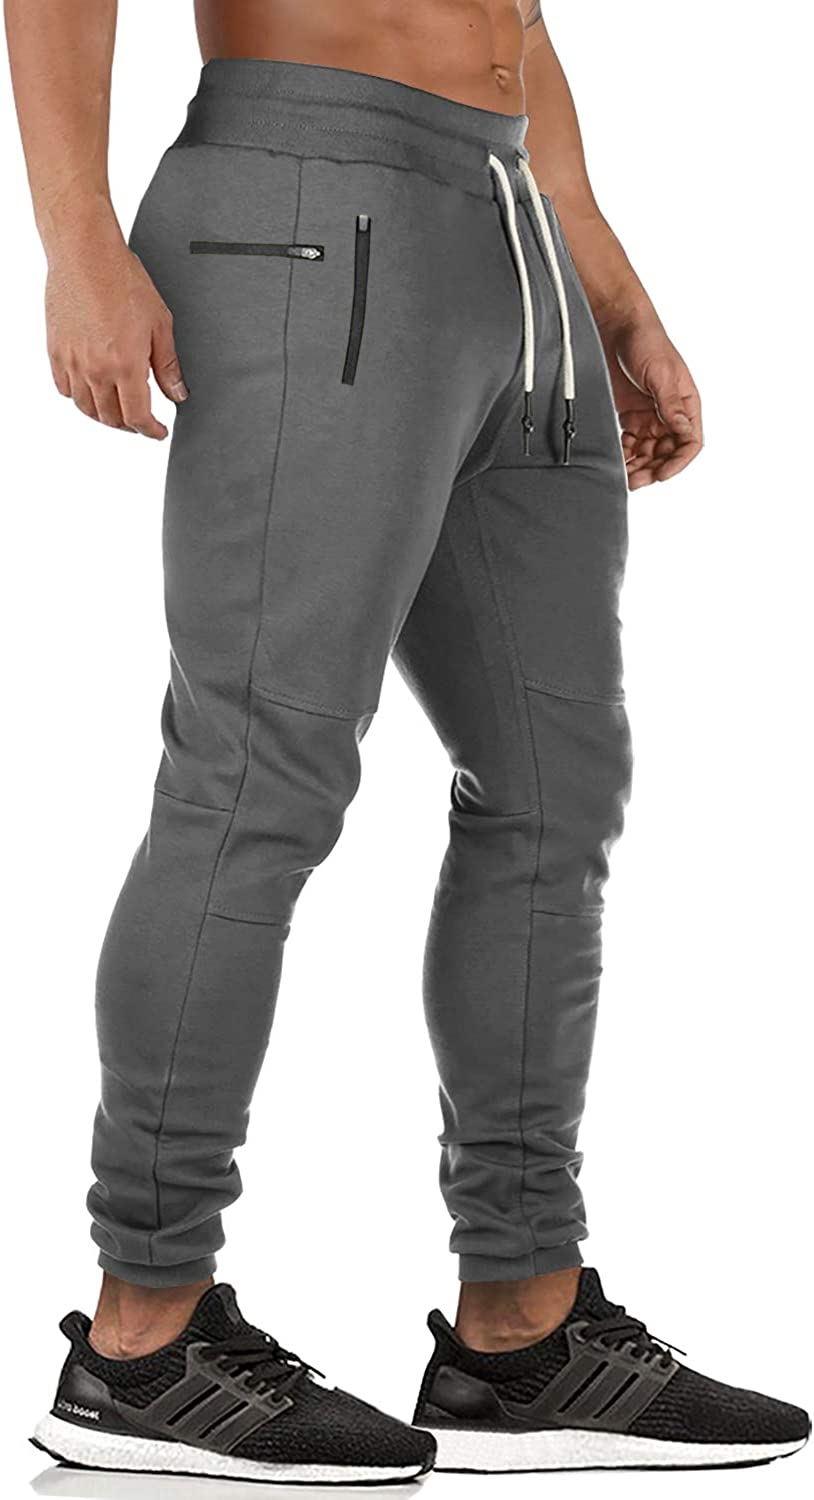 JINSHI Men/'s Running Pants Sweatpants with Pockets Athletic Pants for Workout